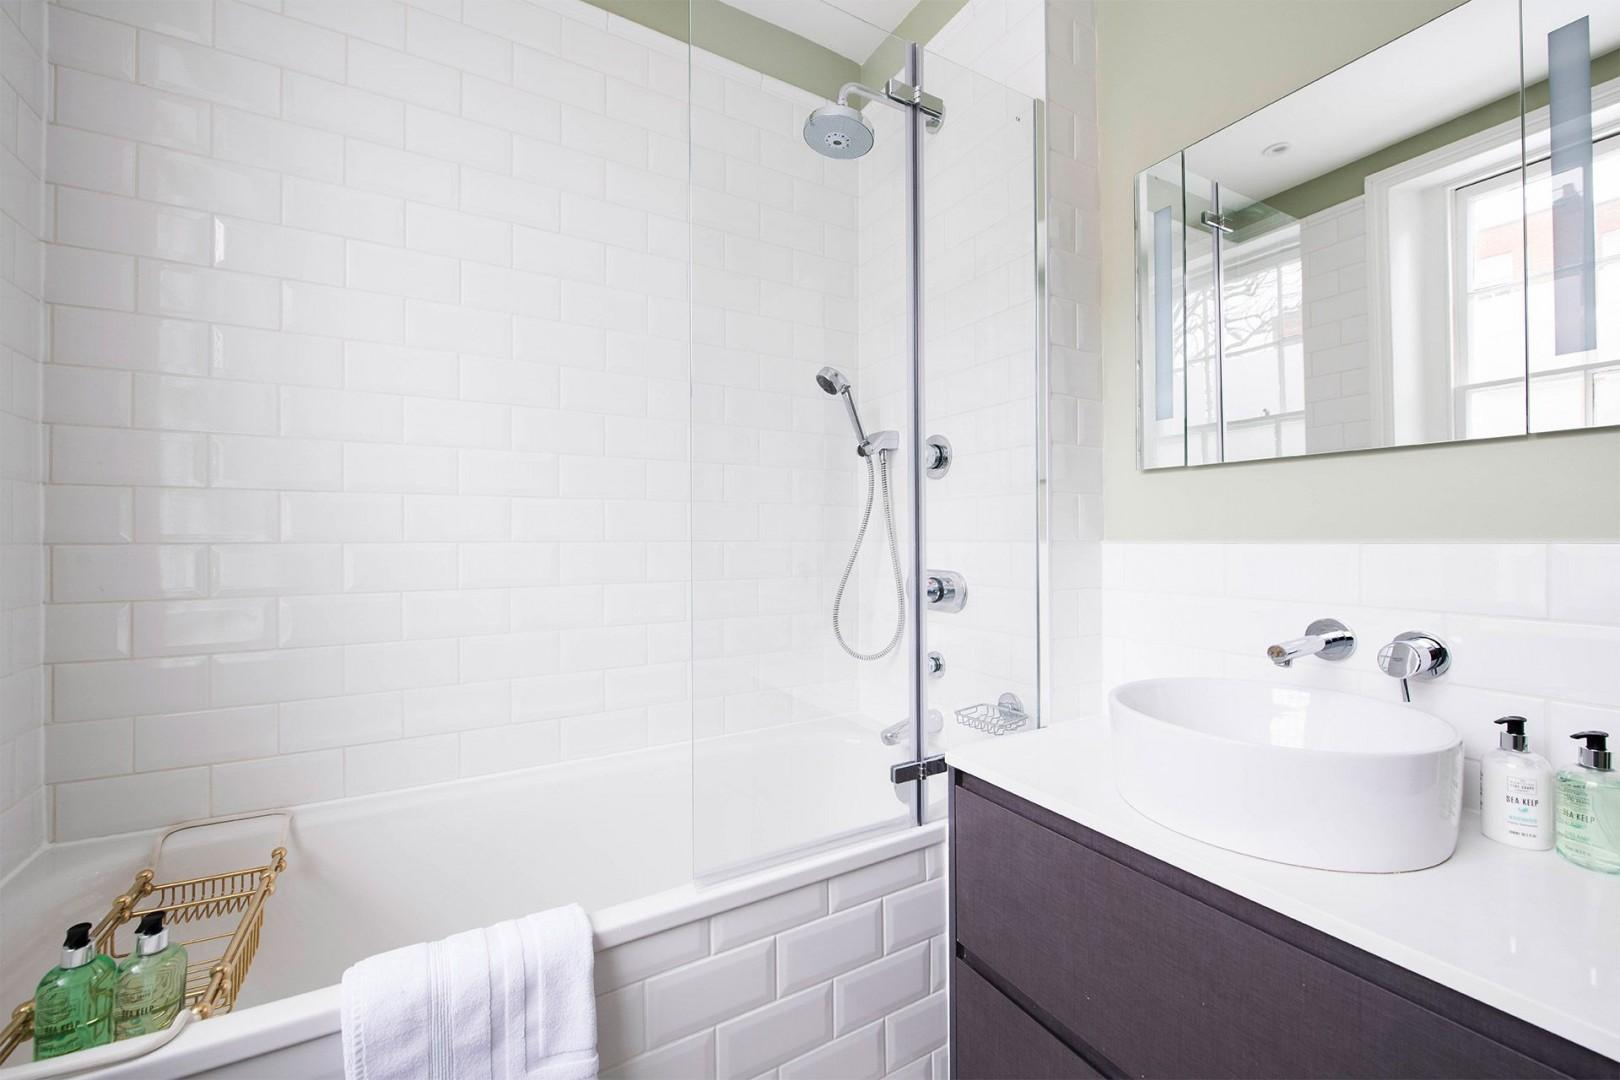 Bathtub with fixed and flexible shower heads